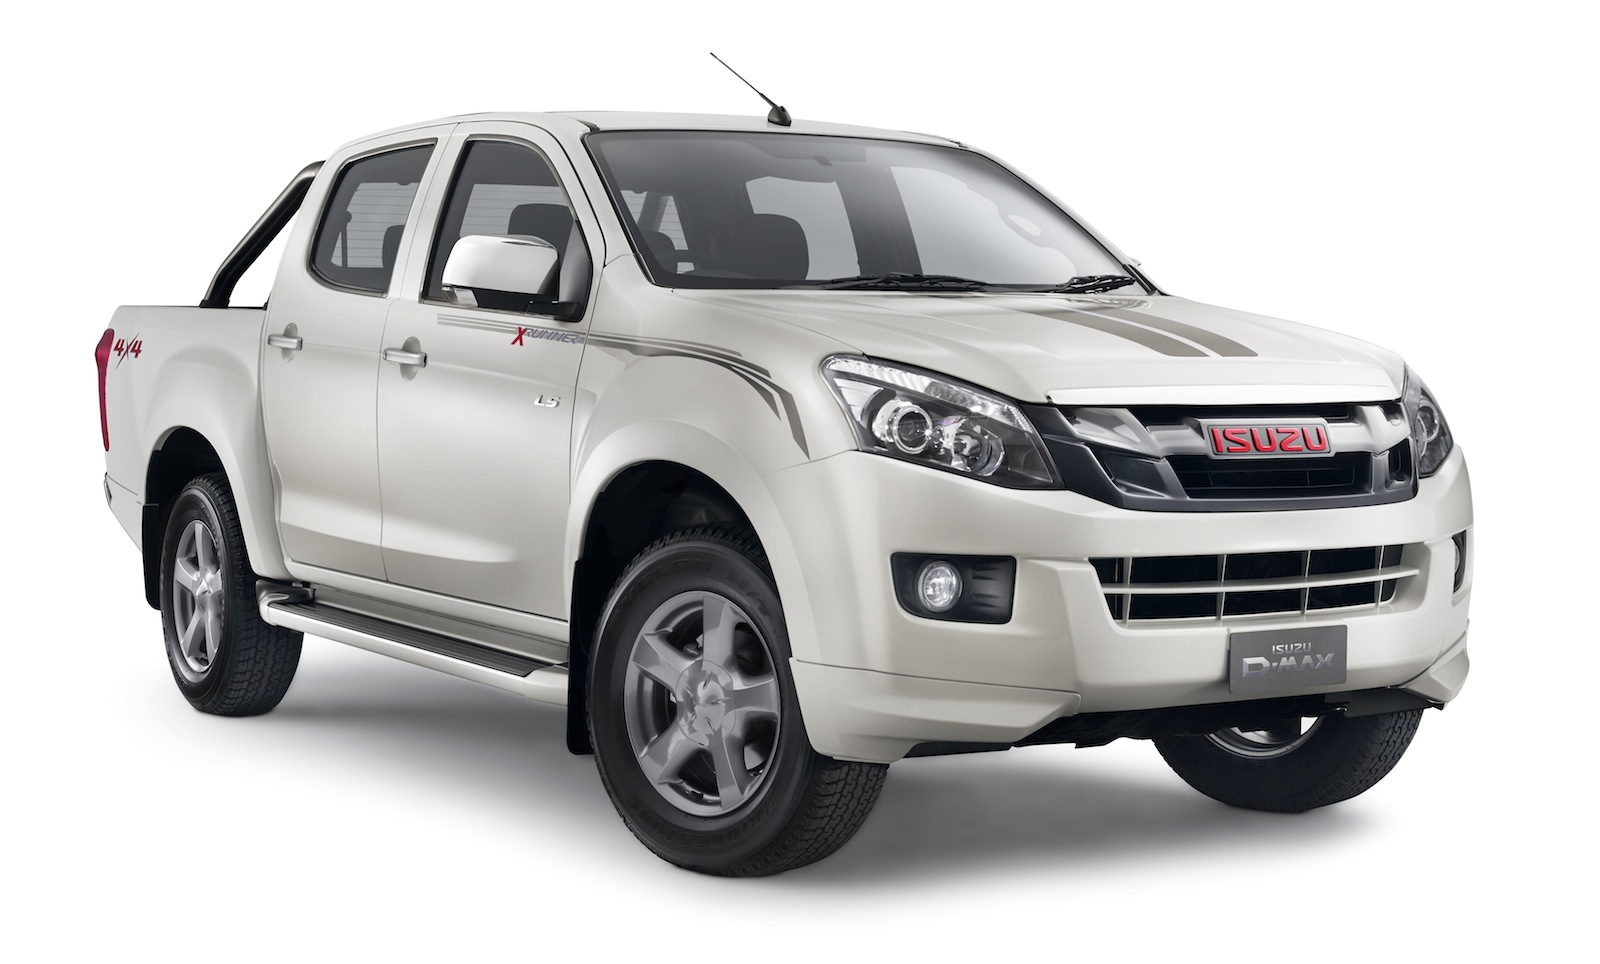 isuzu d max x runner special edition launched photos 1 of 13. Black Bedroom Furniture Sets. Home Design Ideas